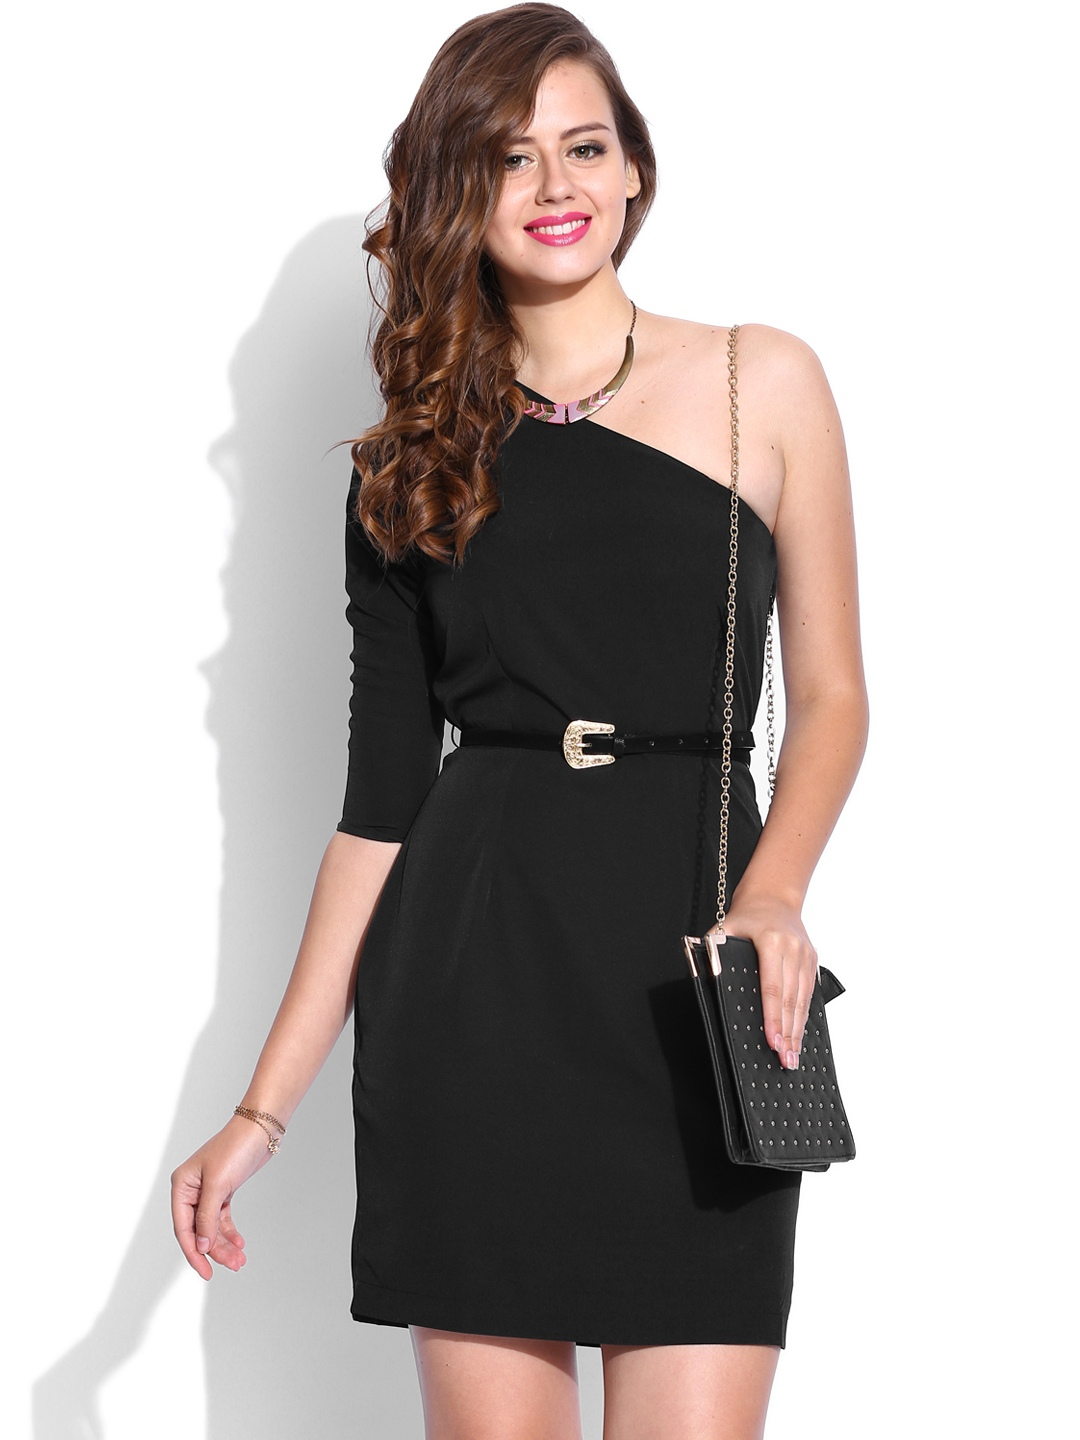 Black dresses online shopping india